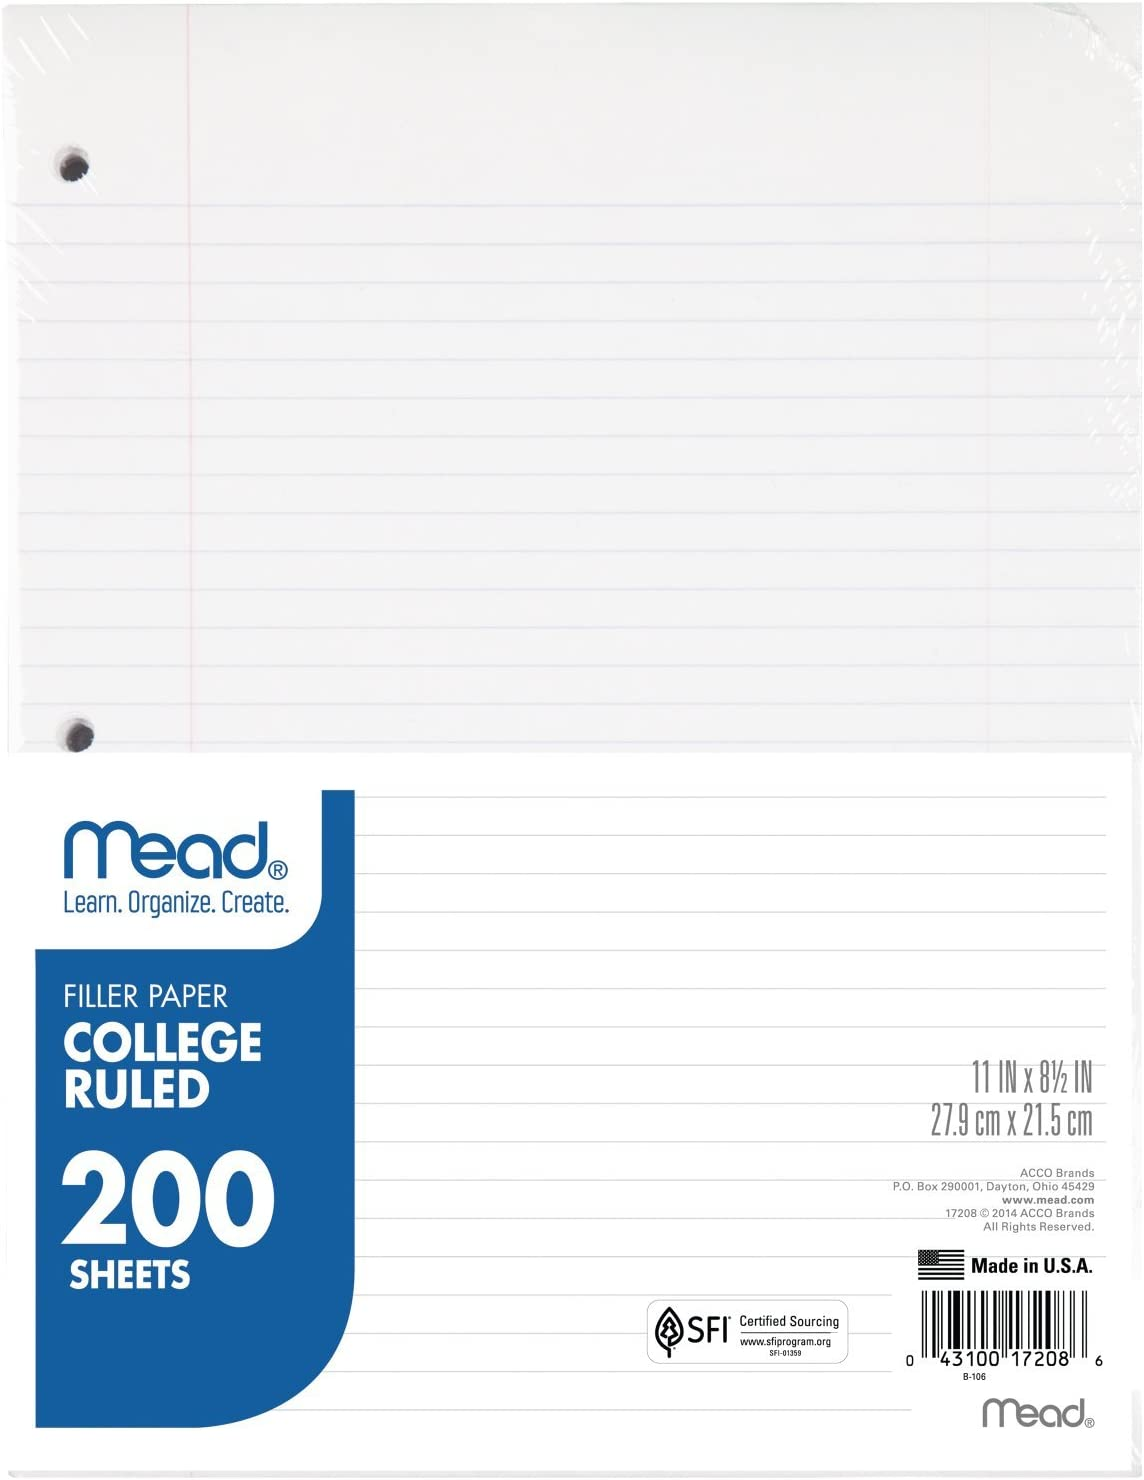 Mead Loose Leaf Paper, Filler Paper, College Ruled, 200 Sheets, 11 x 8-1/2 inches, 3 Hole Punched, 1 Pack (17208)